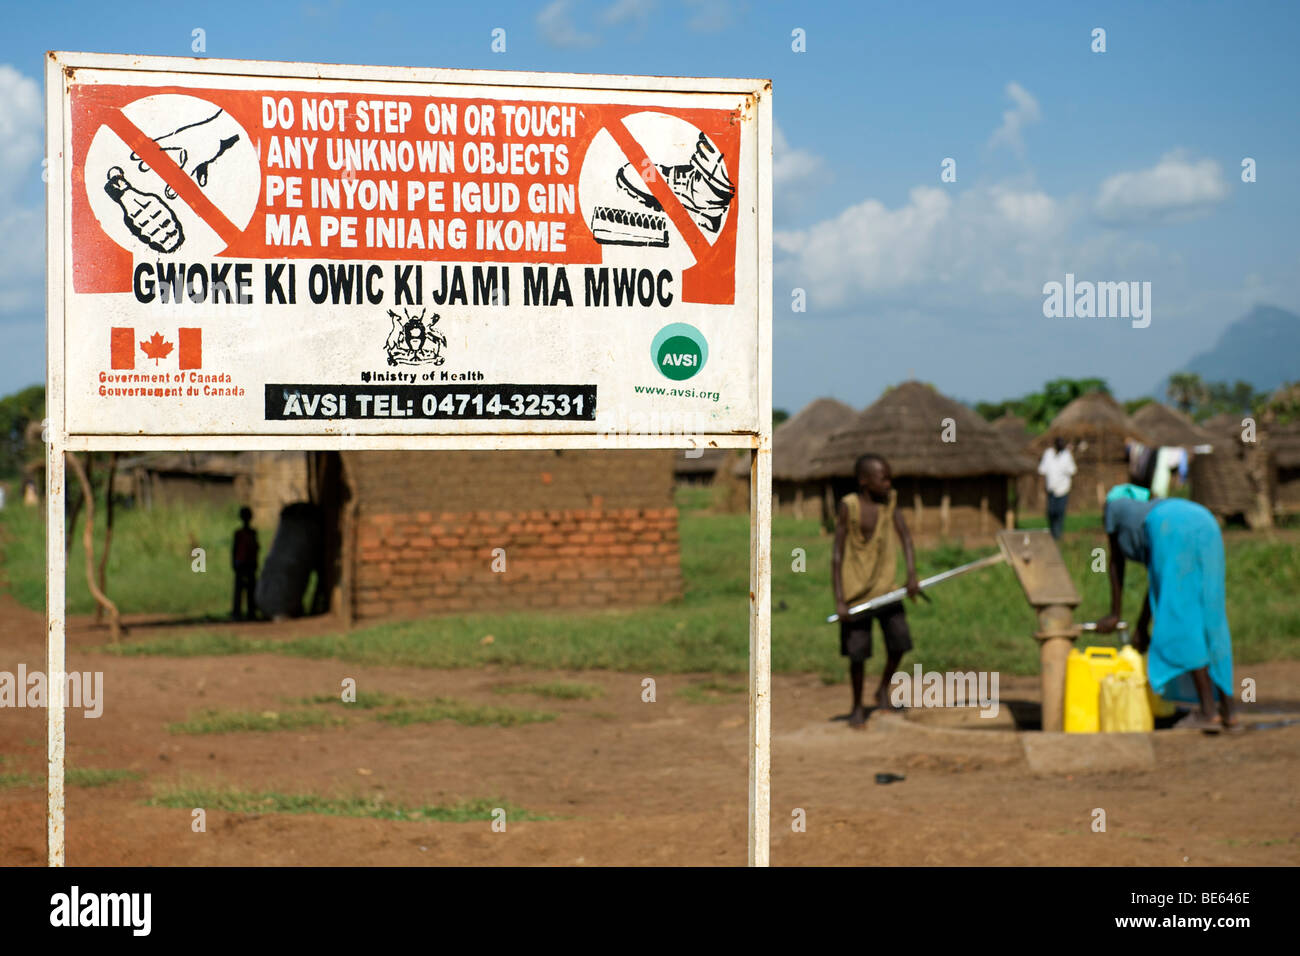 Villagers pumping water in front of a sign warning of unexploded ordnance in a village in the Kitgum region of northern - Stock Image